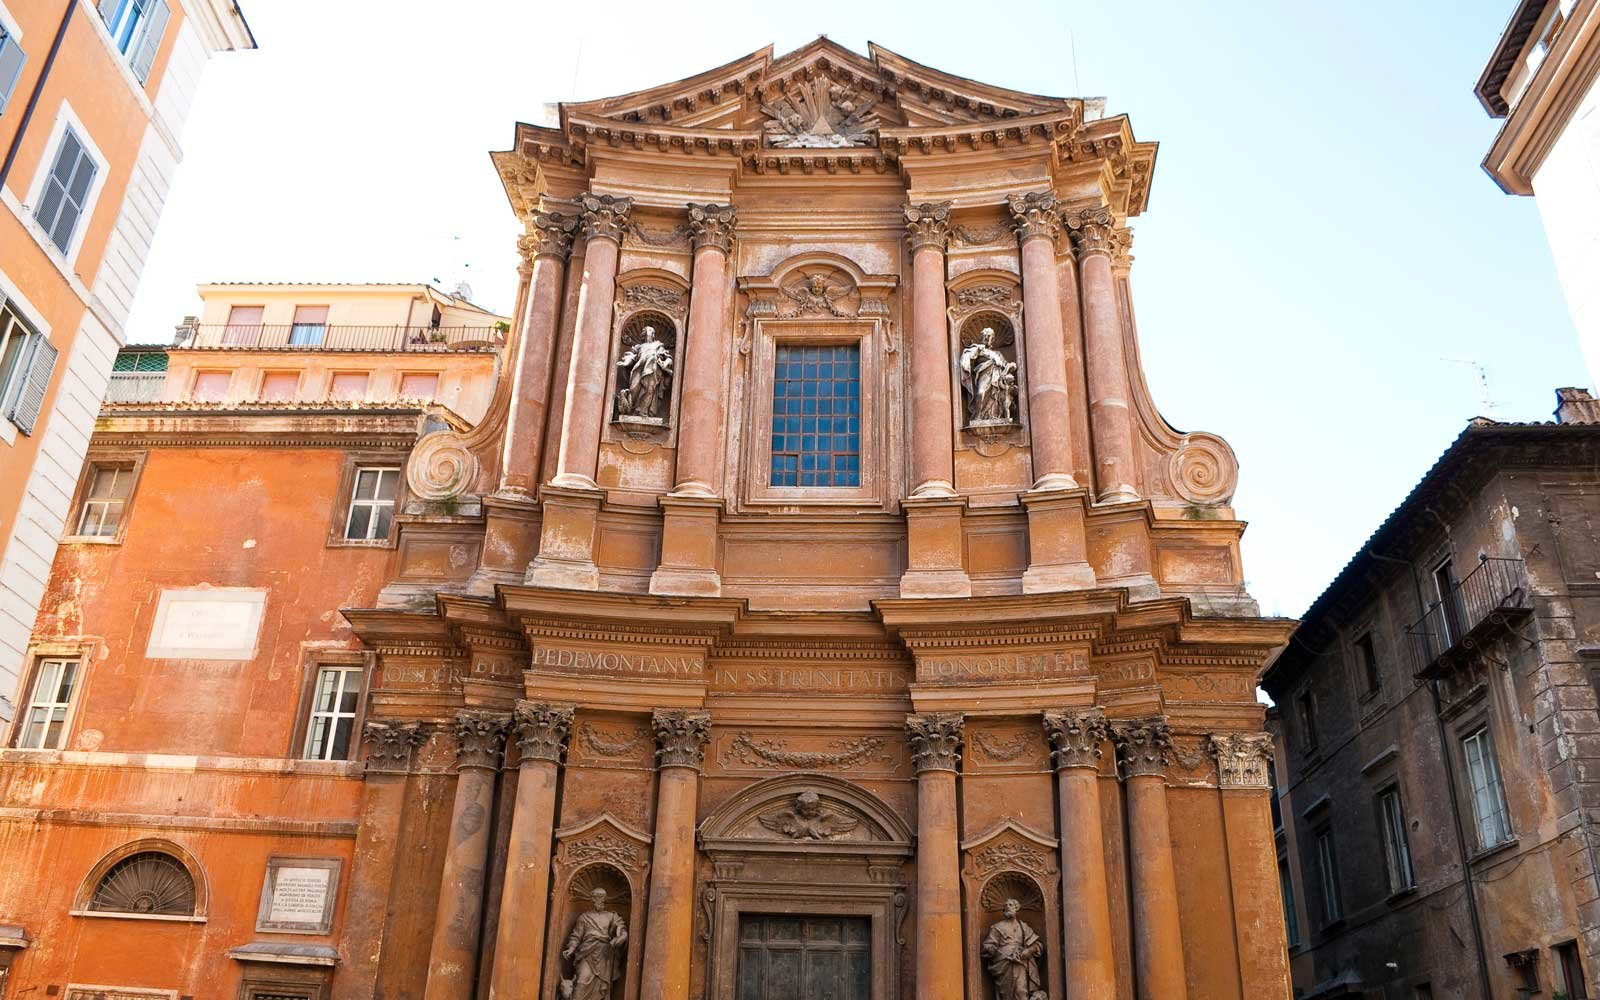 Church of the Most Holy Trinity of Pilgrims - Trinita dei Pellegrini, in the Regola rione, Rome, Italy